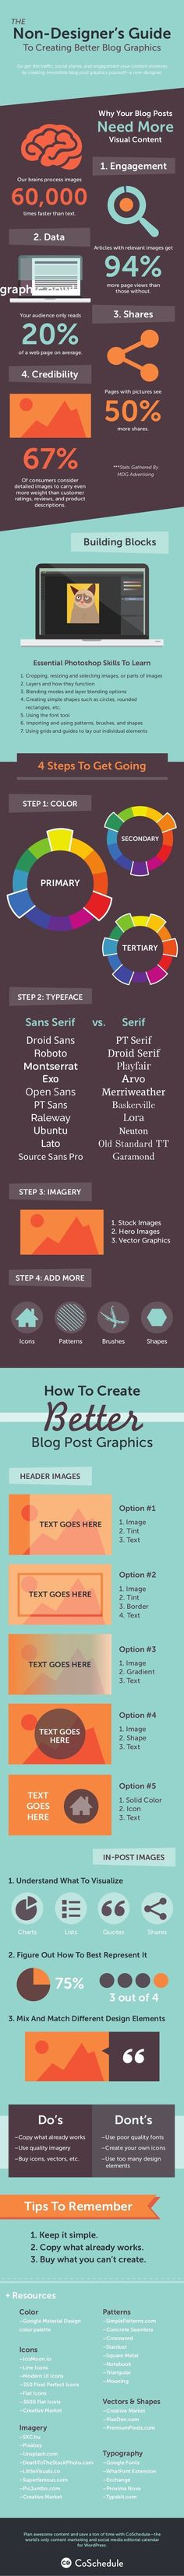 How To Create Images That Boost Blog Post Shares [Infographic]  Read more at http://www.business2community.com/infographics/how-to-create-images-that-boost-blog-post-shares-infographic-01263940#krfYUruqFtcd4sGq.99